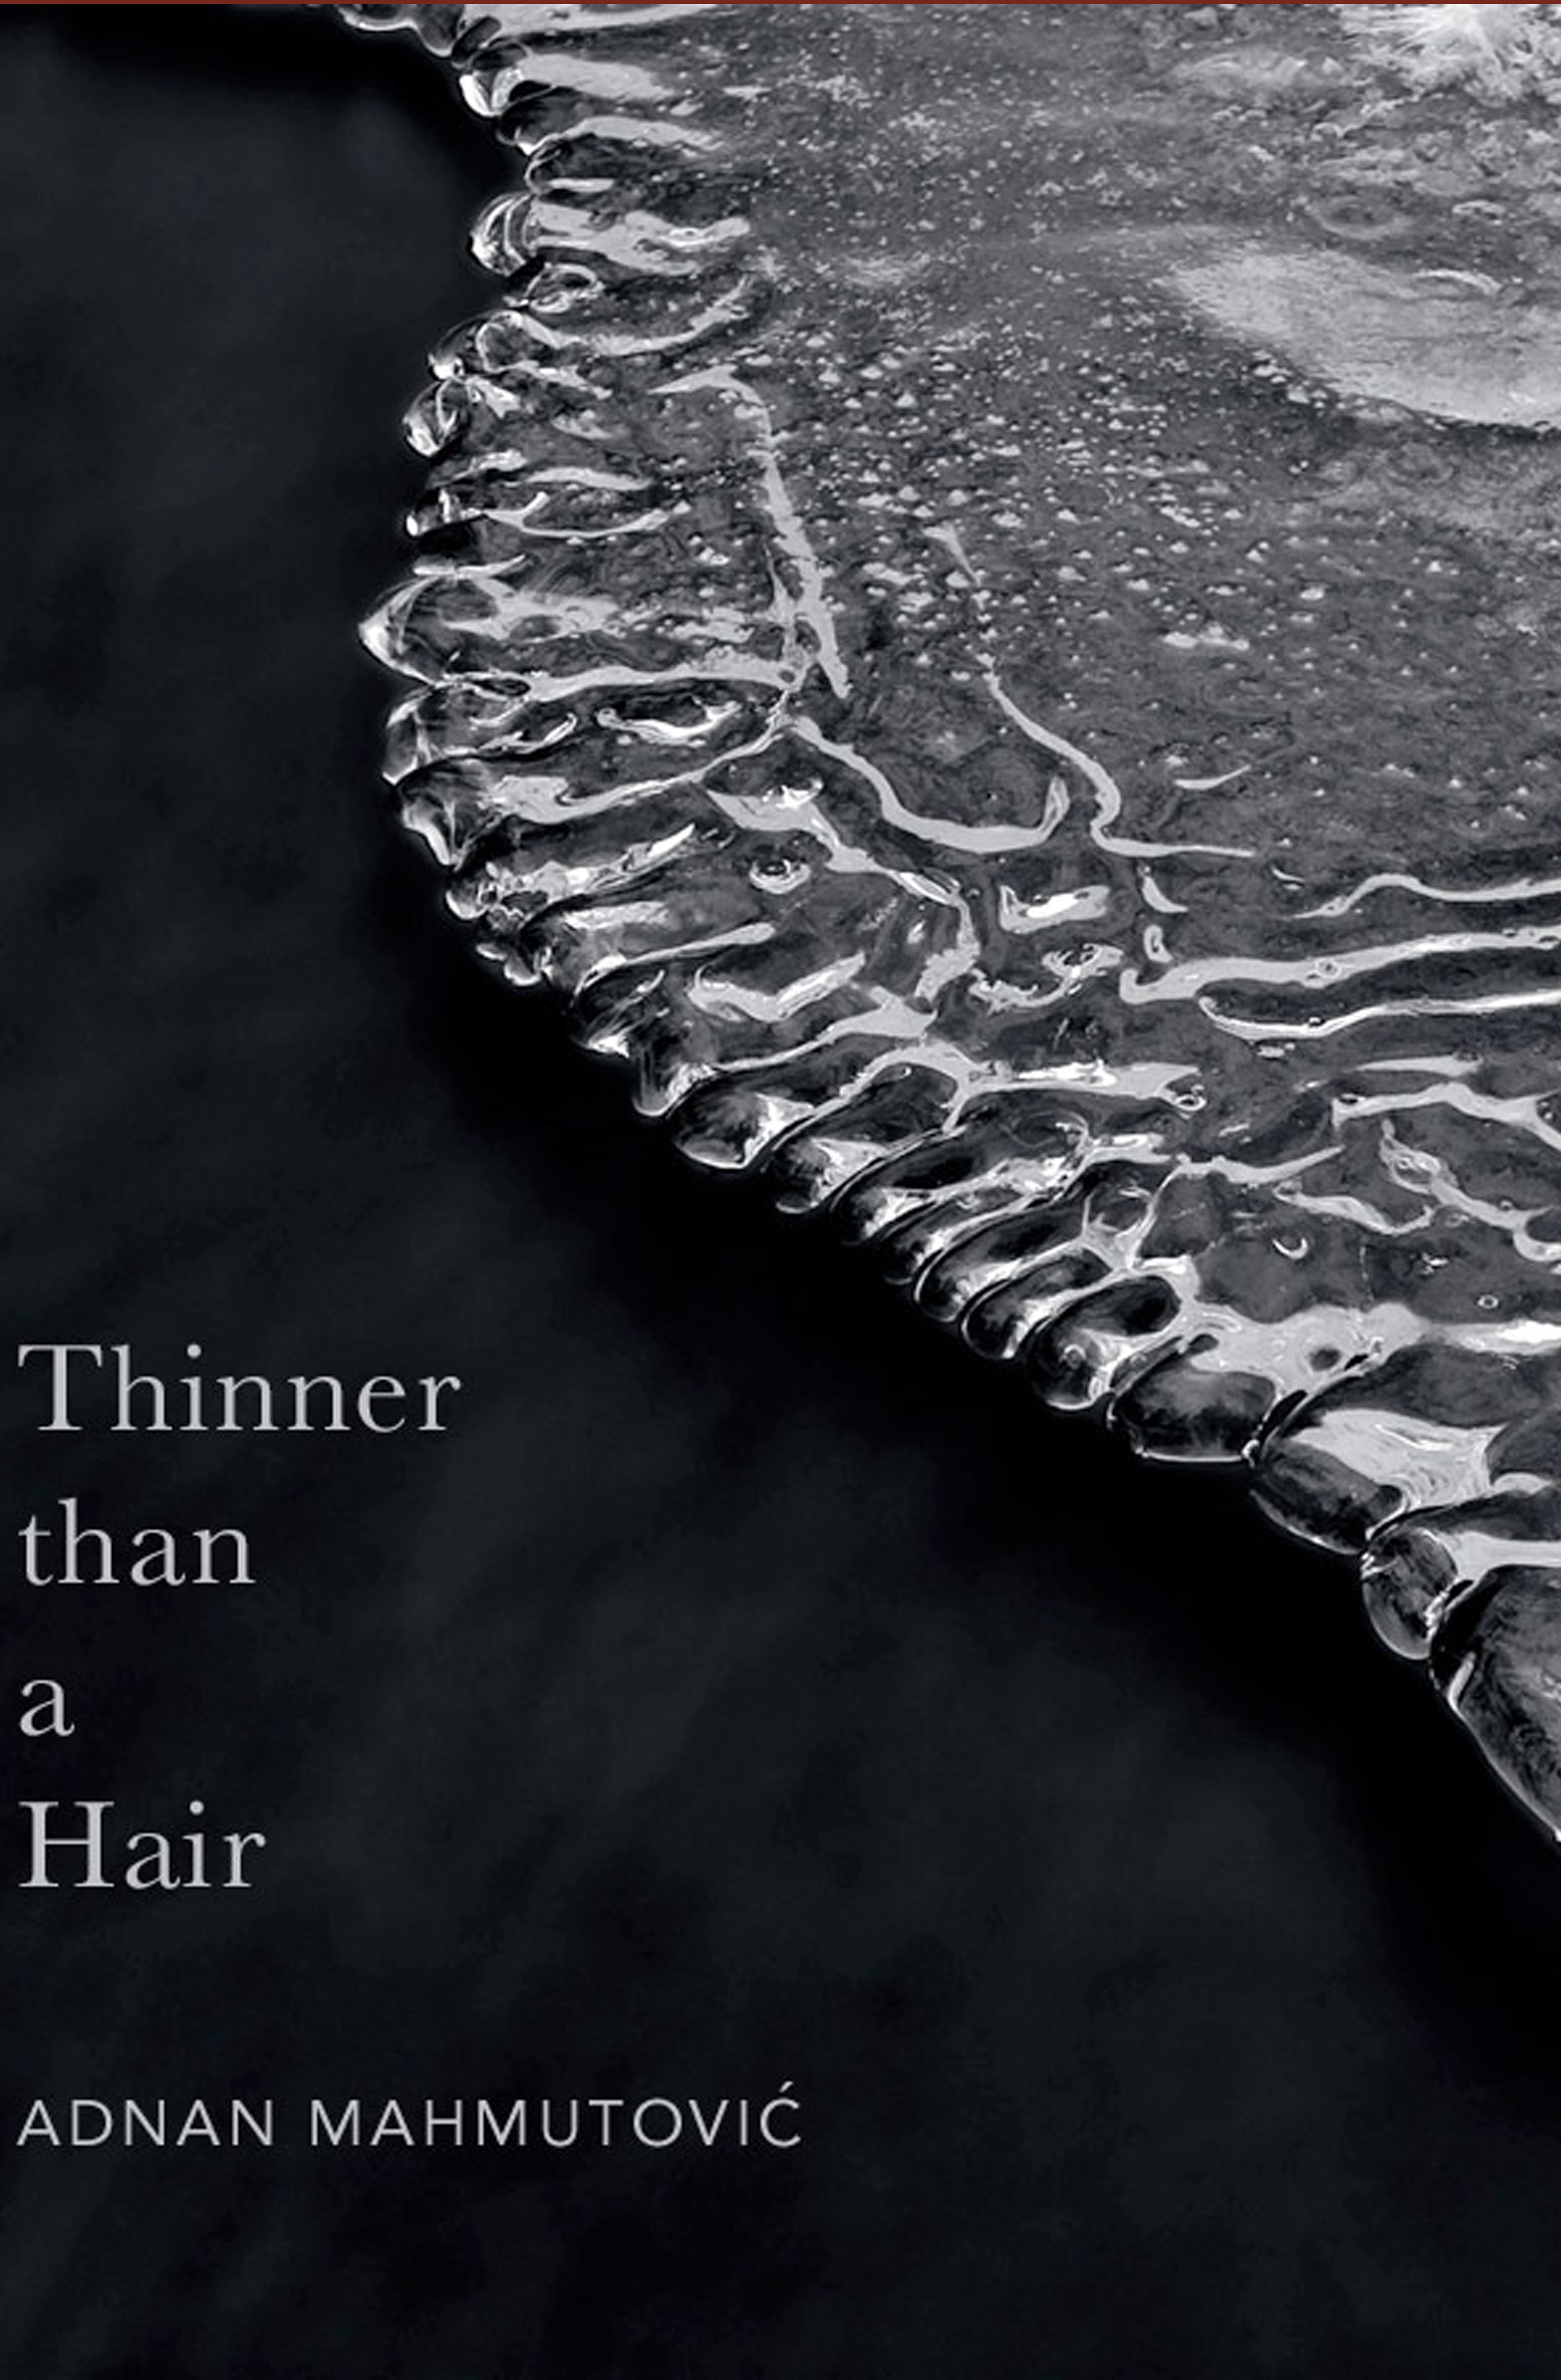 Thinner than a Hair